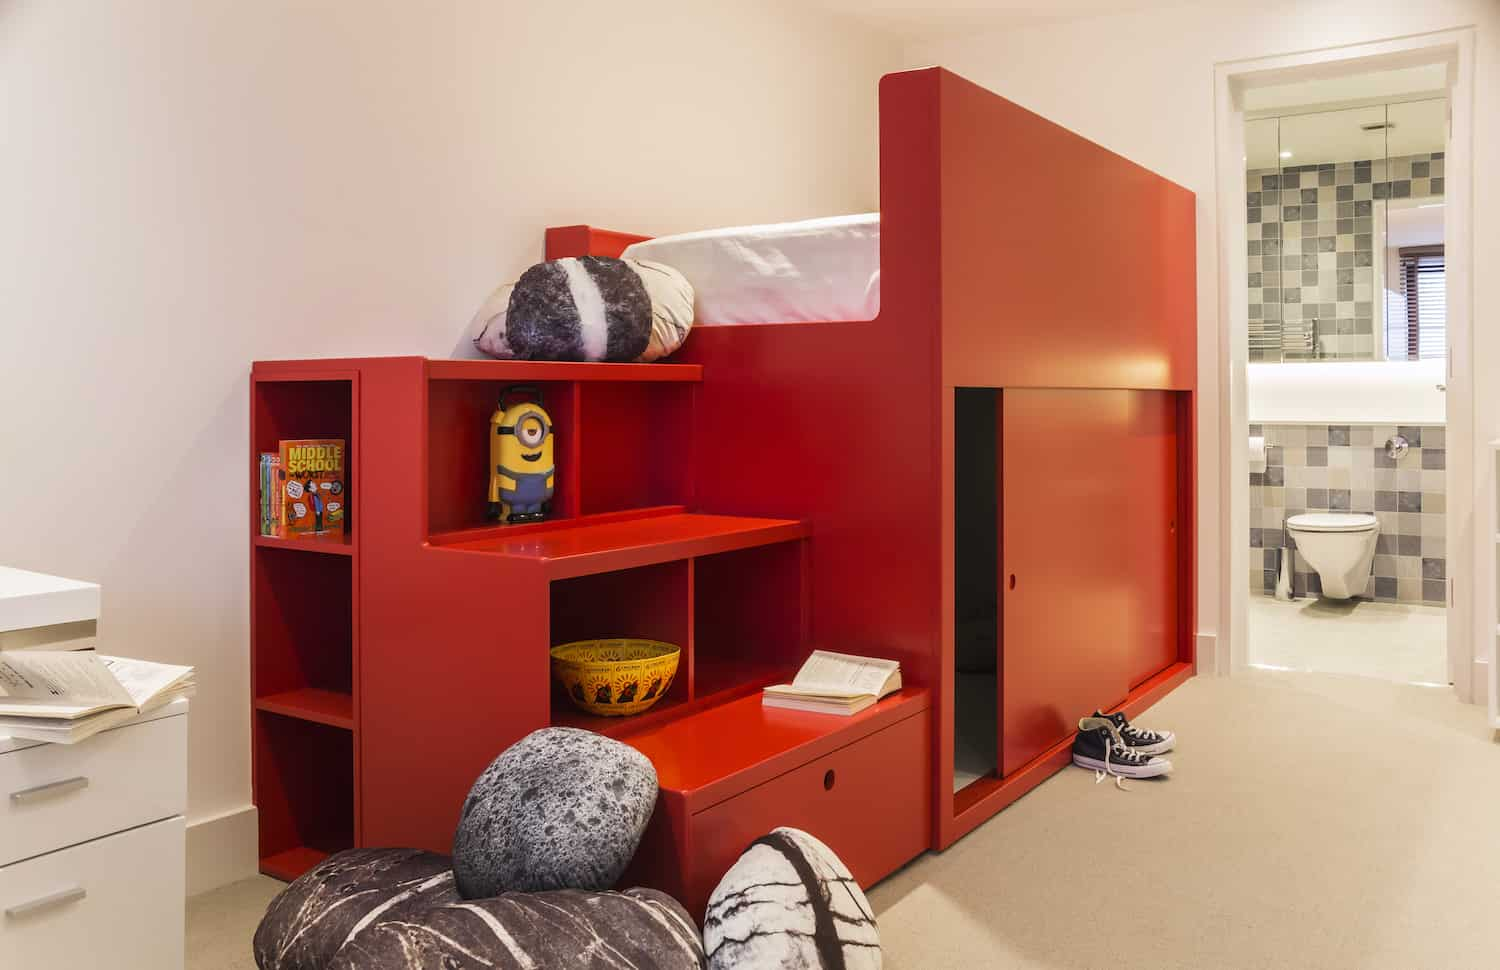 After - 4F - Bedroom 2 - Bespoke Red Bed with hiding place - LLI Design & 201 Fun Kids Bedroom Design Ideas for 2019